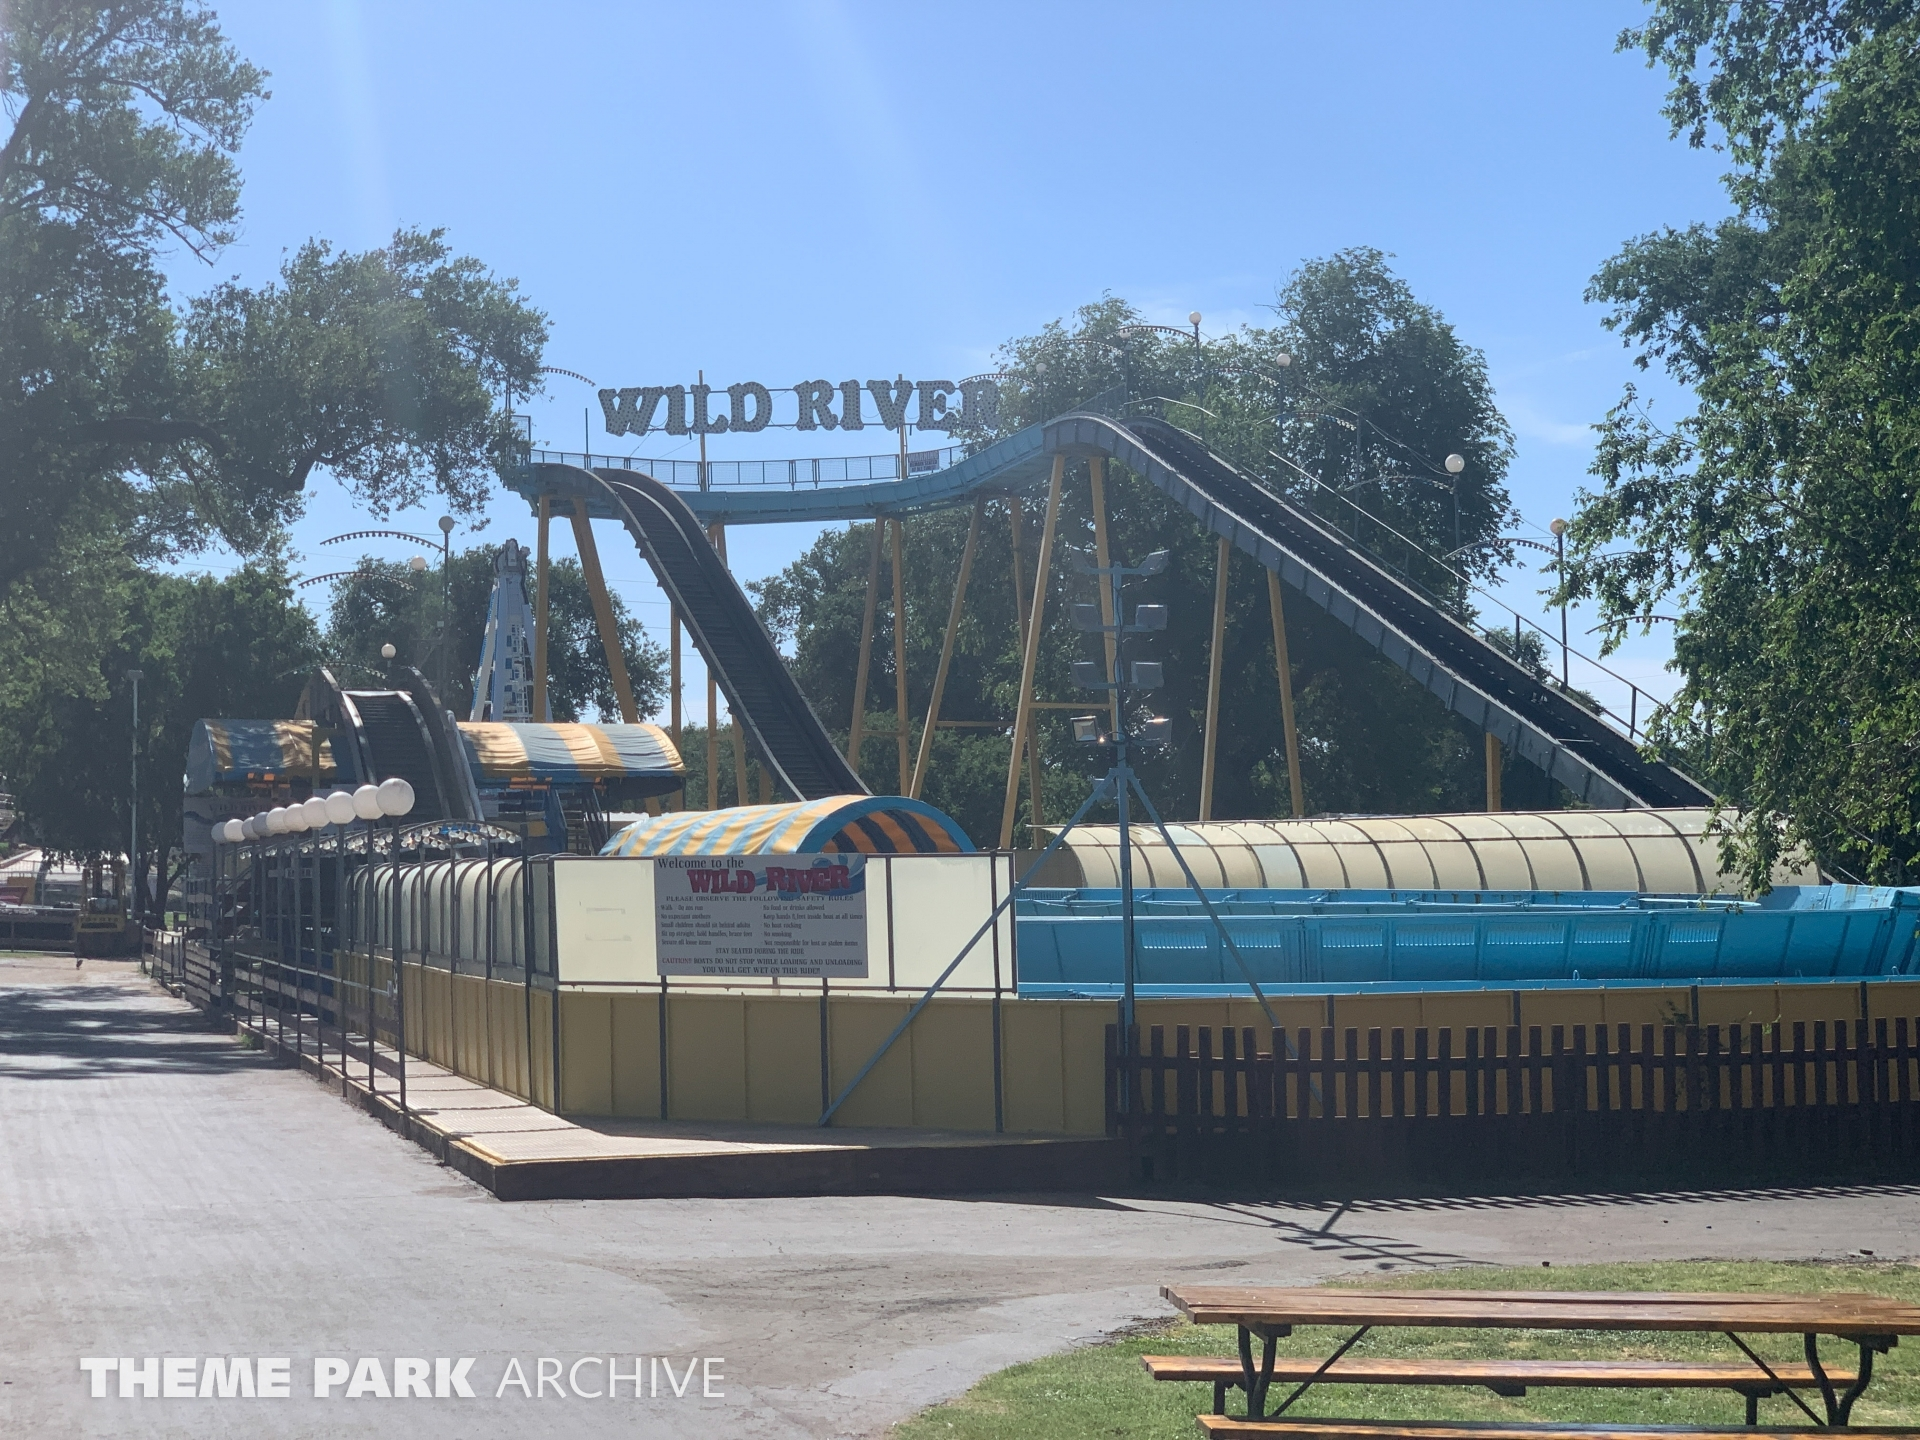 Wild River at Joyland Amusement Park